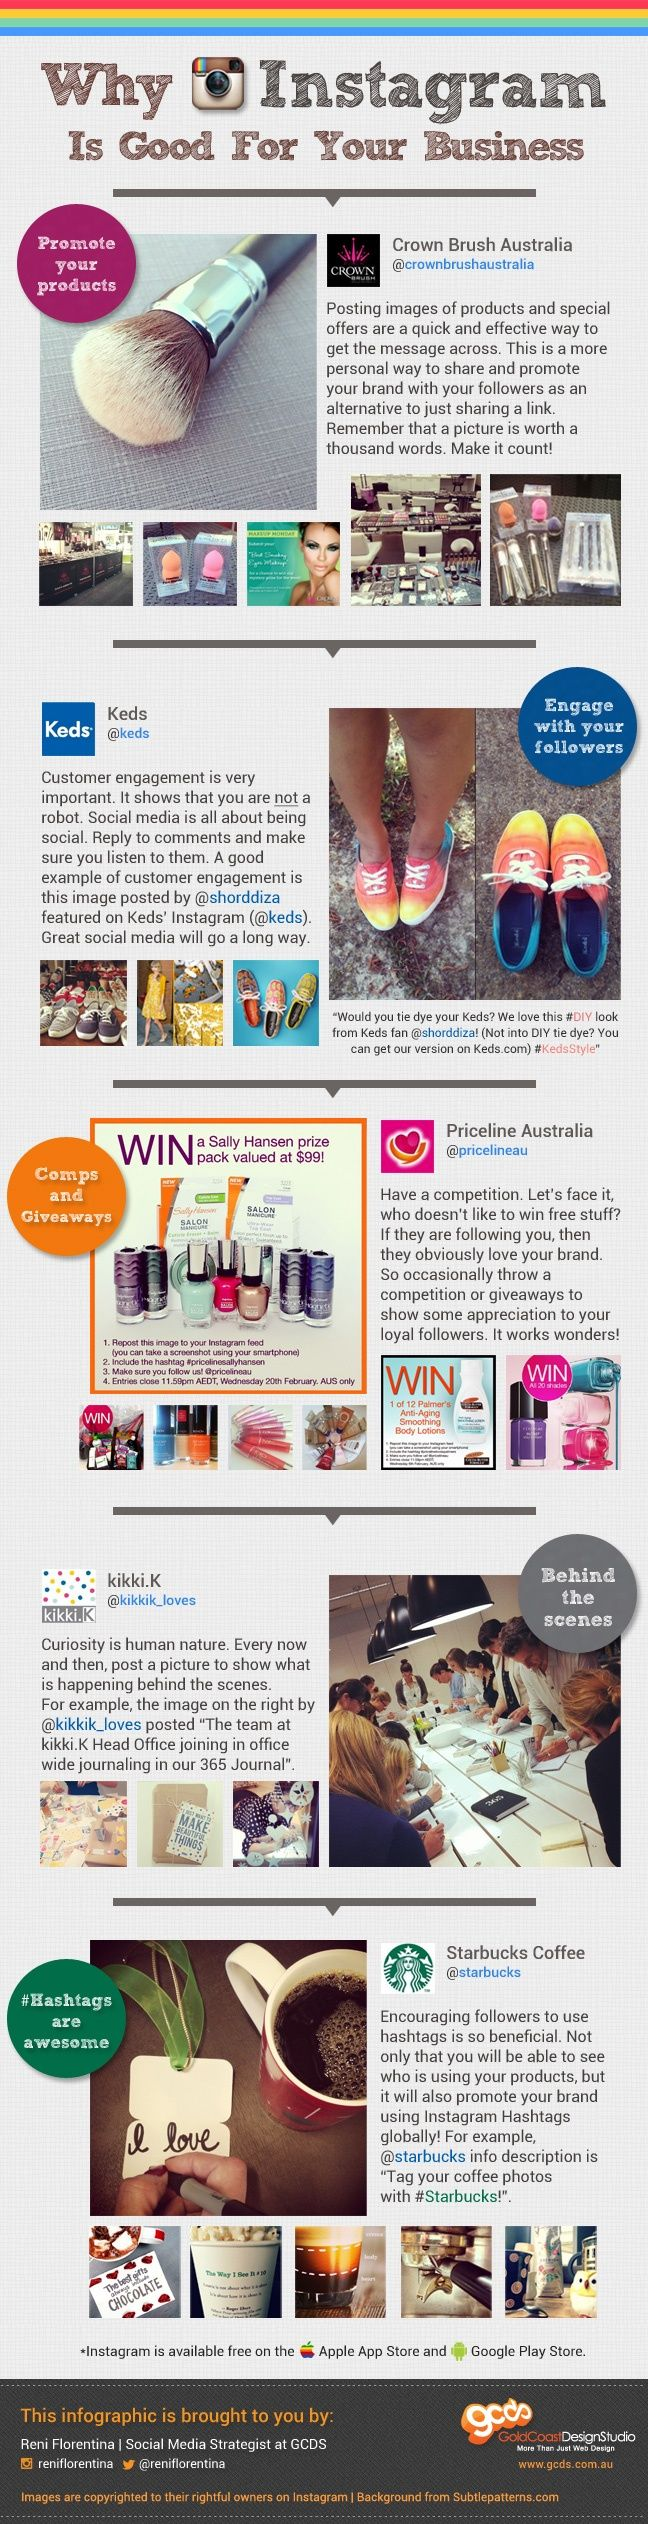 Discover How Your Business Can Use Instagram #SocialMedia #infographic